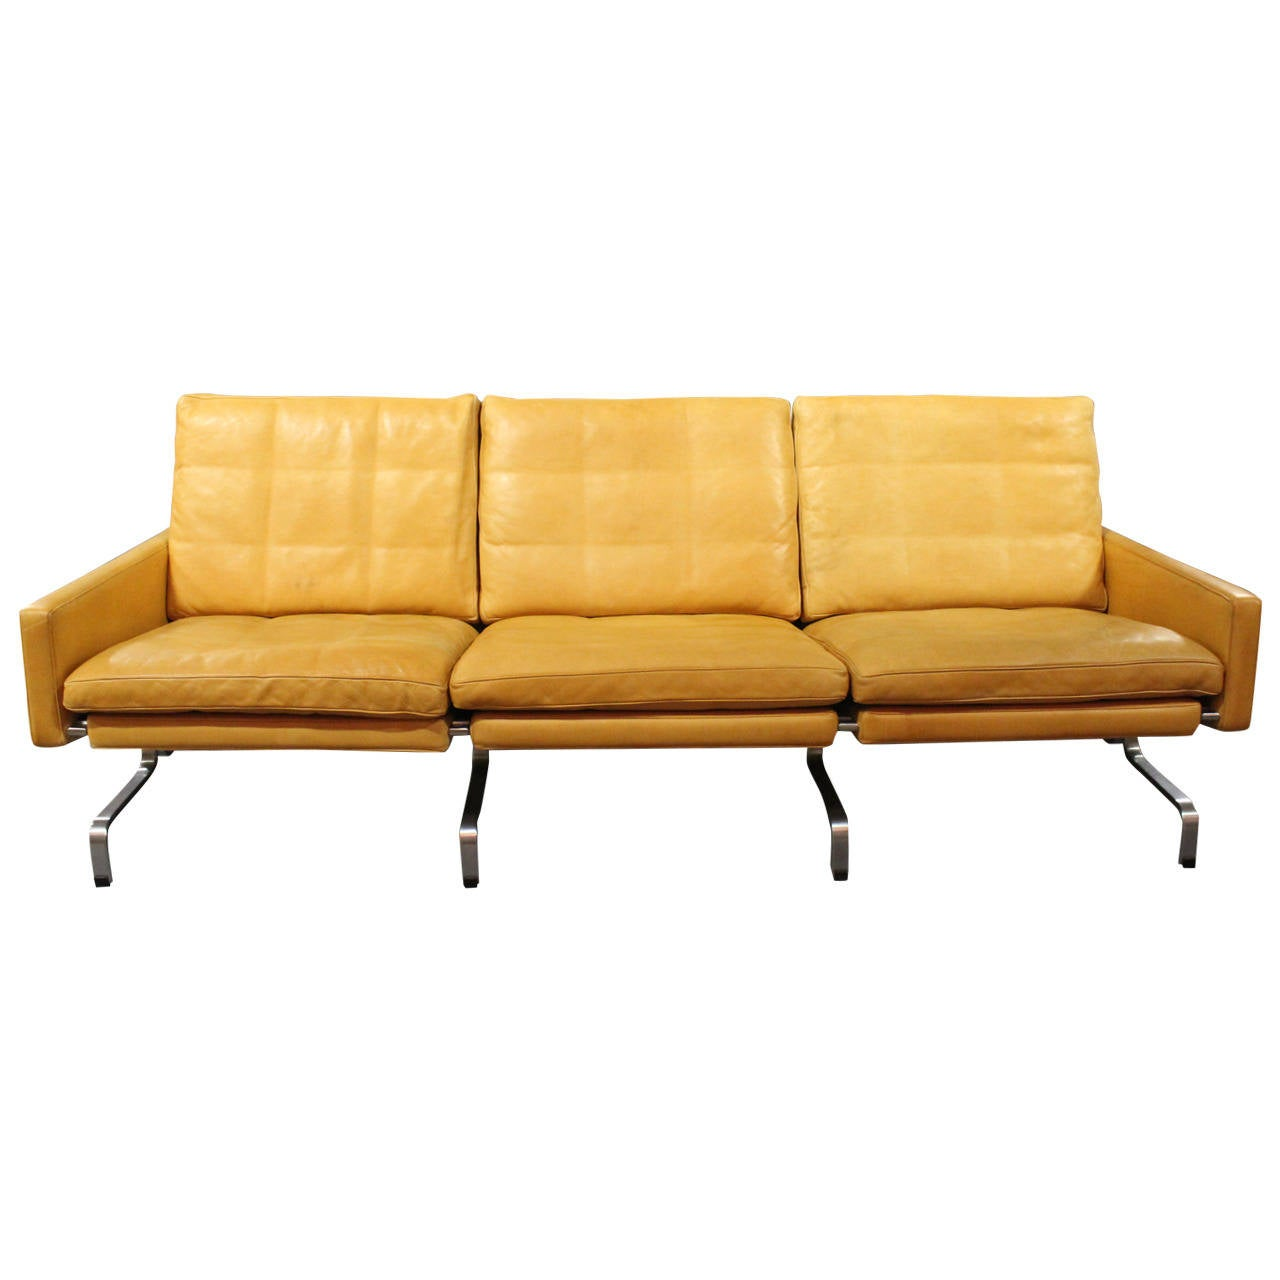 poul kj rholm sofa pk31 3 by fritz hansen 1997 for sale at 1stdibs. Black Bedroom Furniture Sets. Home Design Ideas